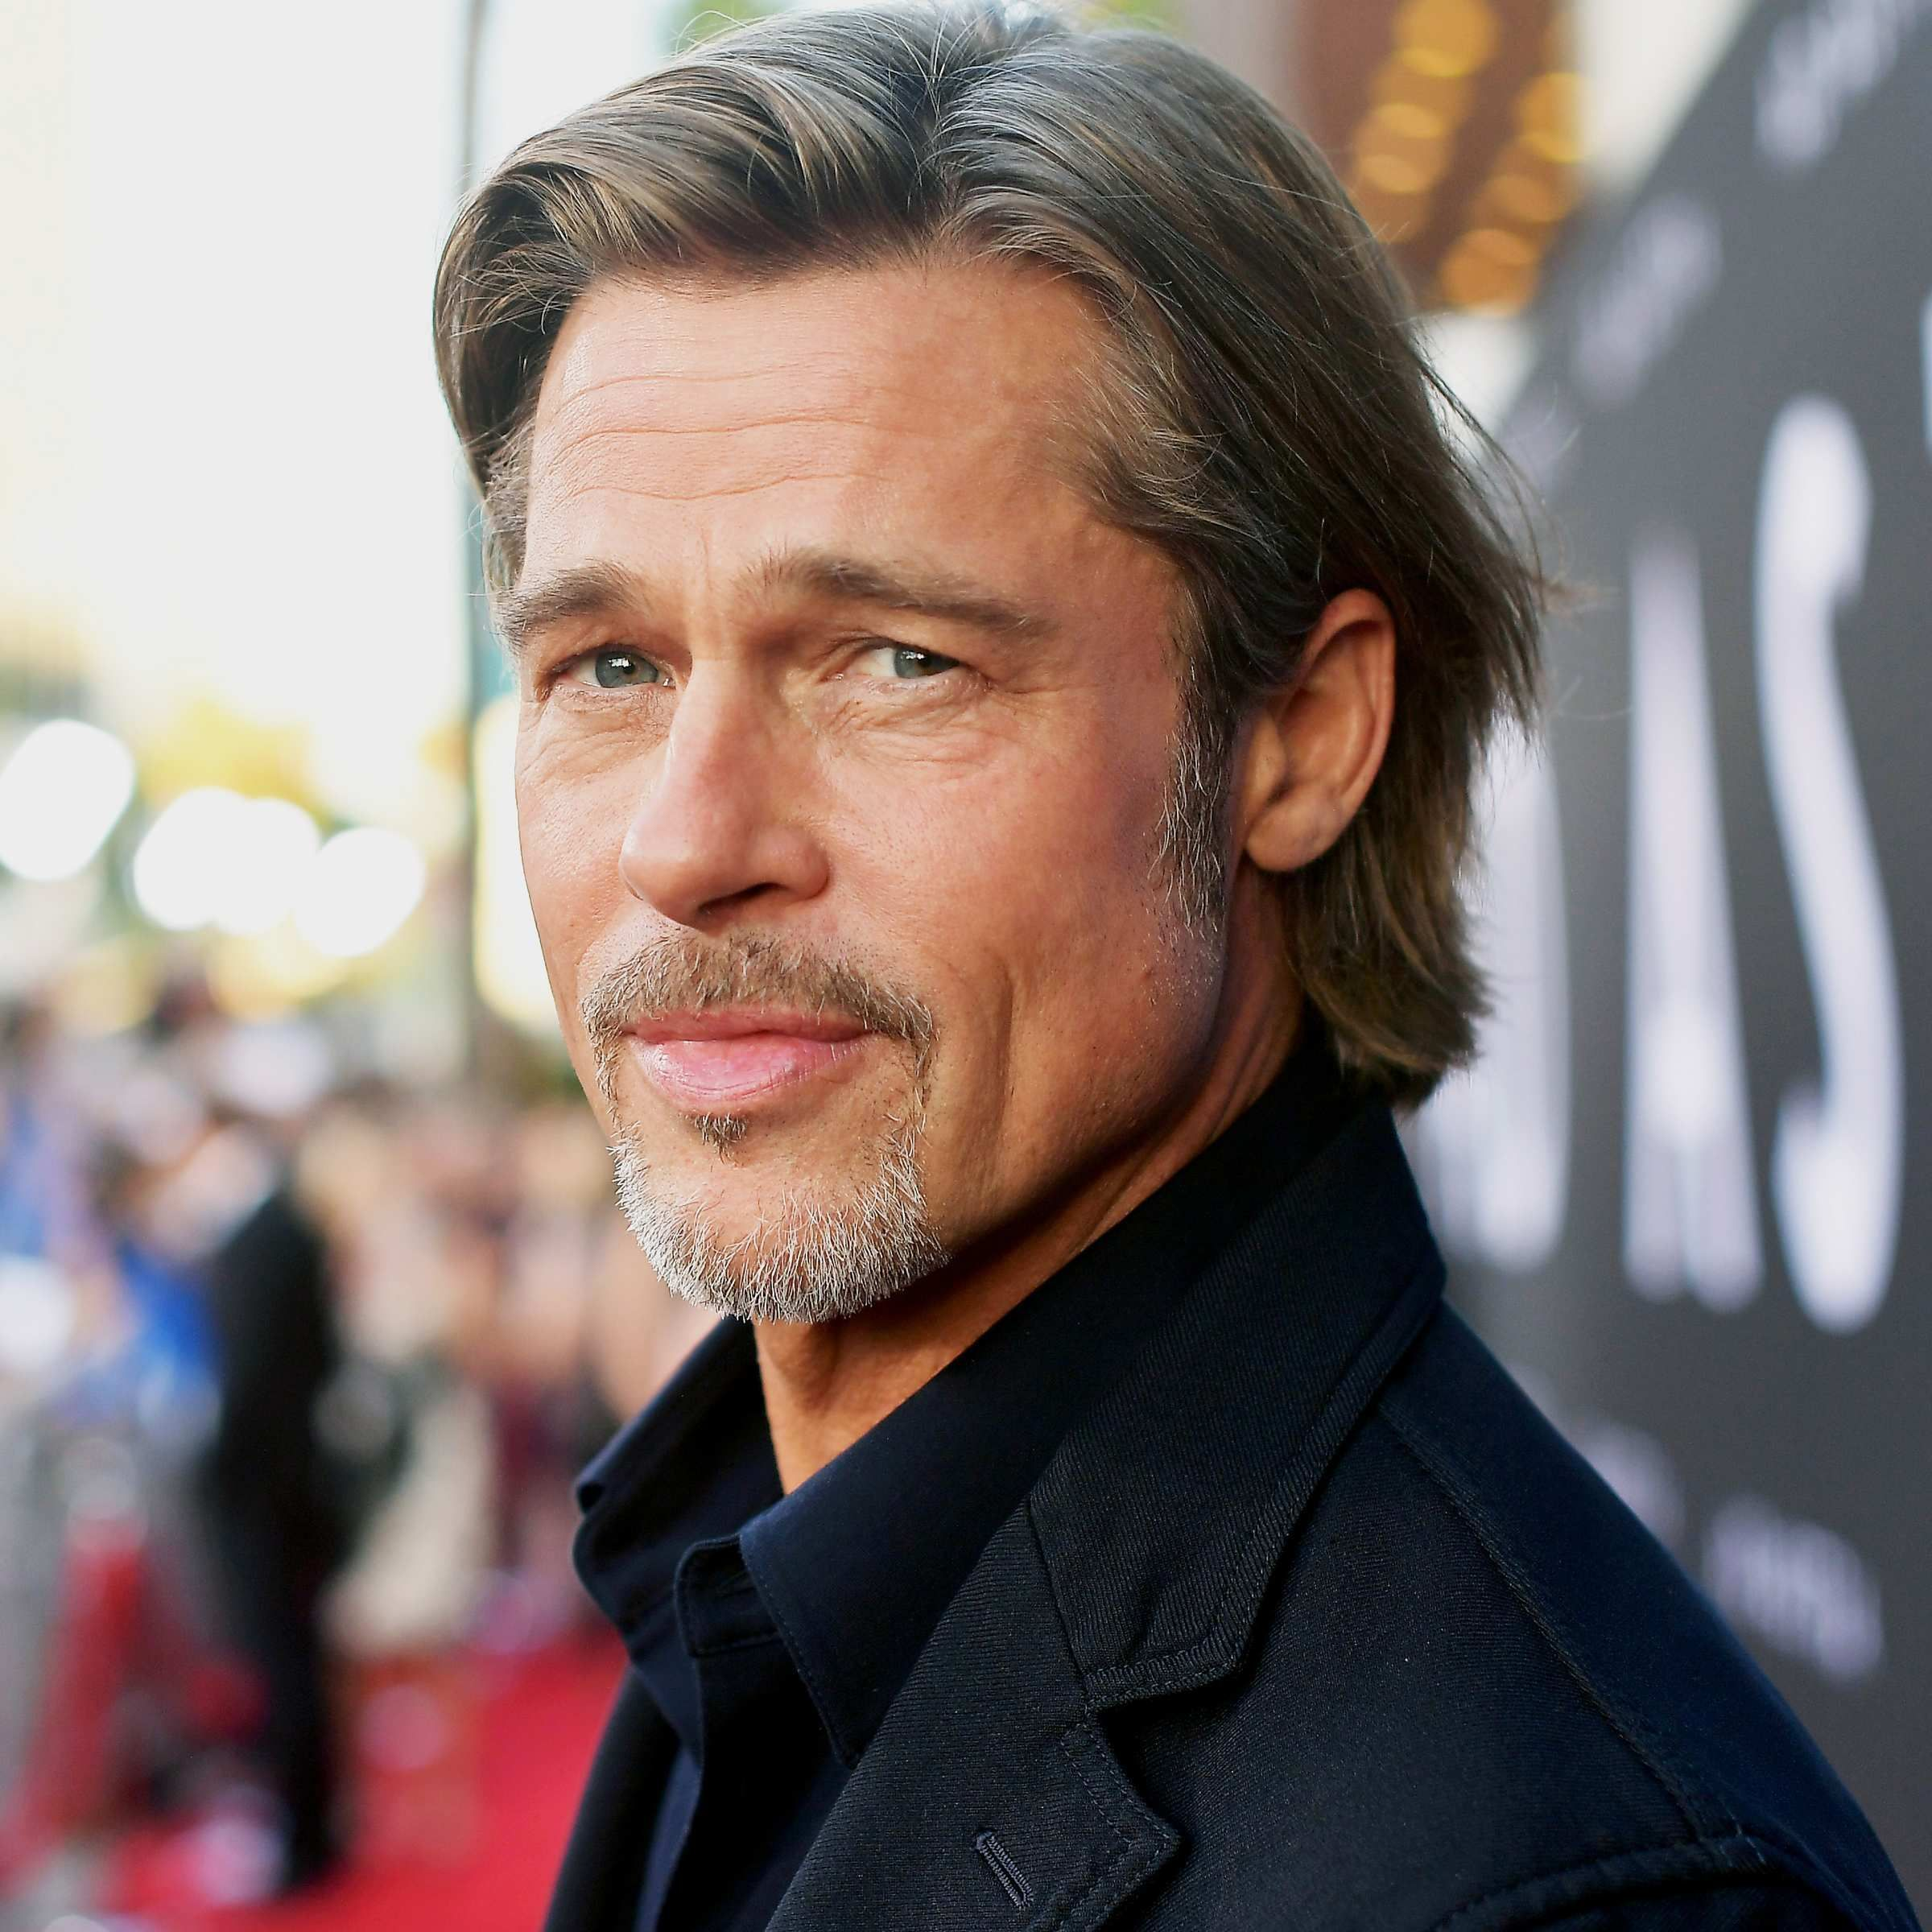 10 Beautiful Photos Of Brad Pitt In Middle Age For Brad Pitt S Birthday 10 Beautiful Photos Of Him Actresses In 2020 Brad Pitt Brad Pitt Birthday Beautiful Men